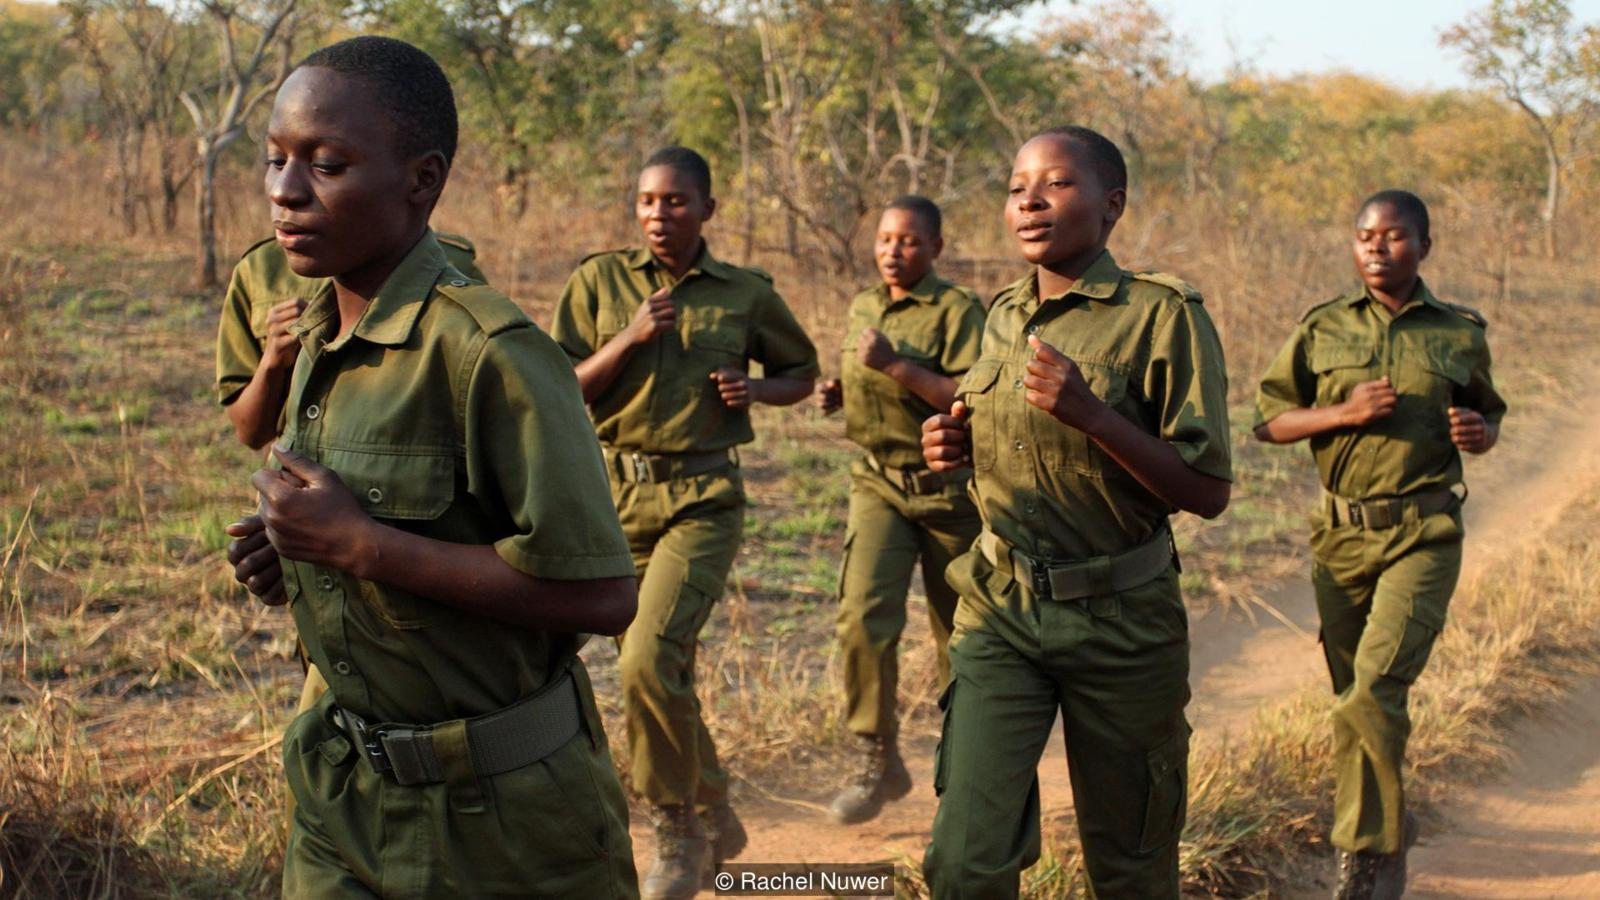 These Zimbabwe women rangers chose the name 'Akashinga', which means 'the Brave Ones' in Shona. As far as Australian Damien Mander knows, Phundundu is the first nature reserve in the world to be managed and protected by an all-women ranger unit that he recruited and trained. (Credit: Rachel Nuwer)